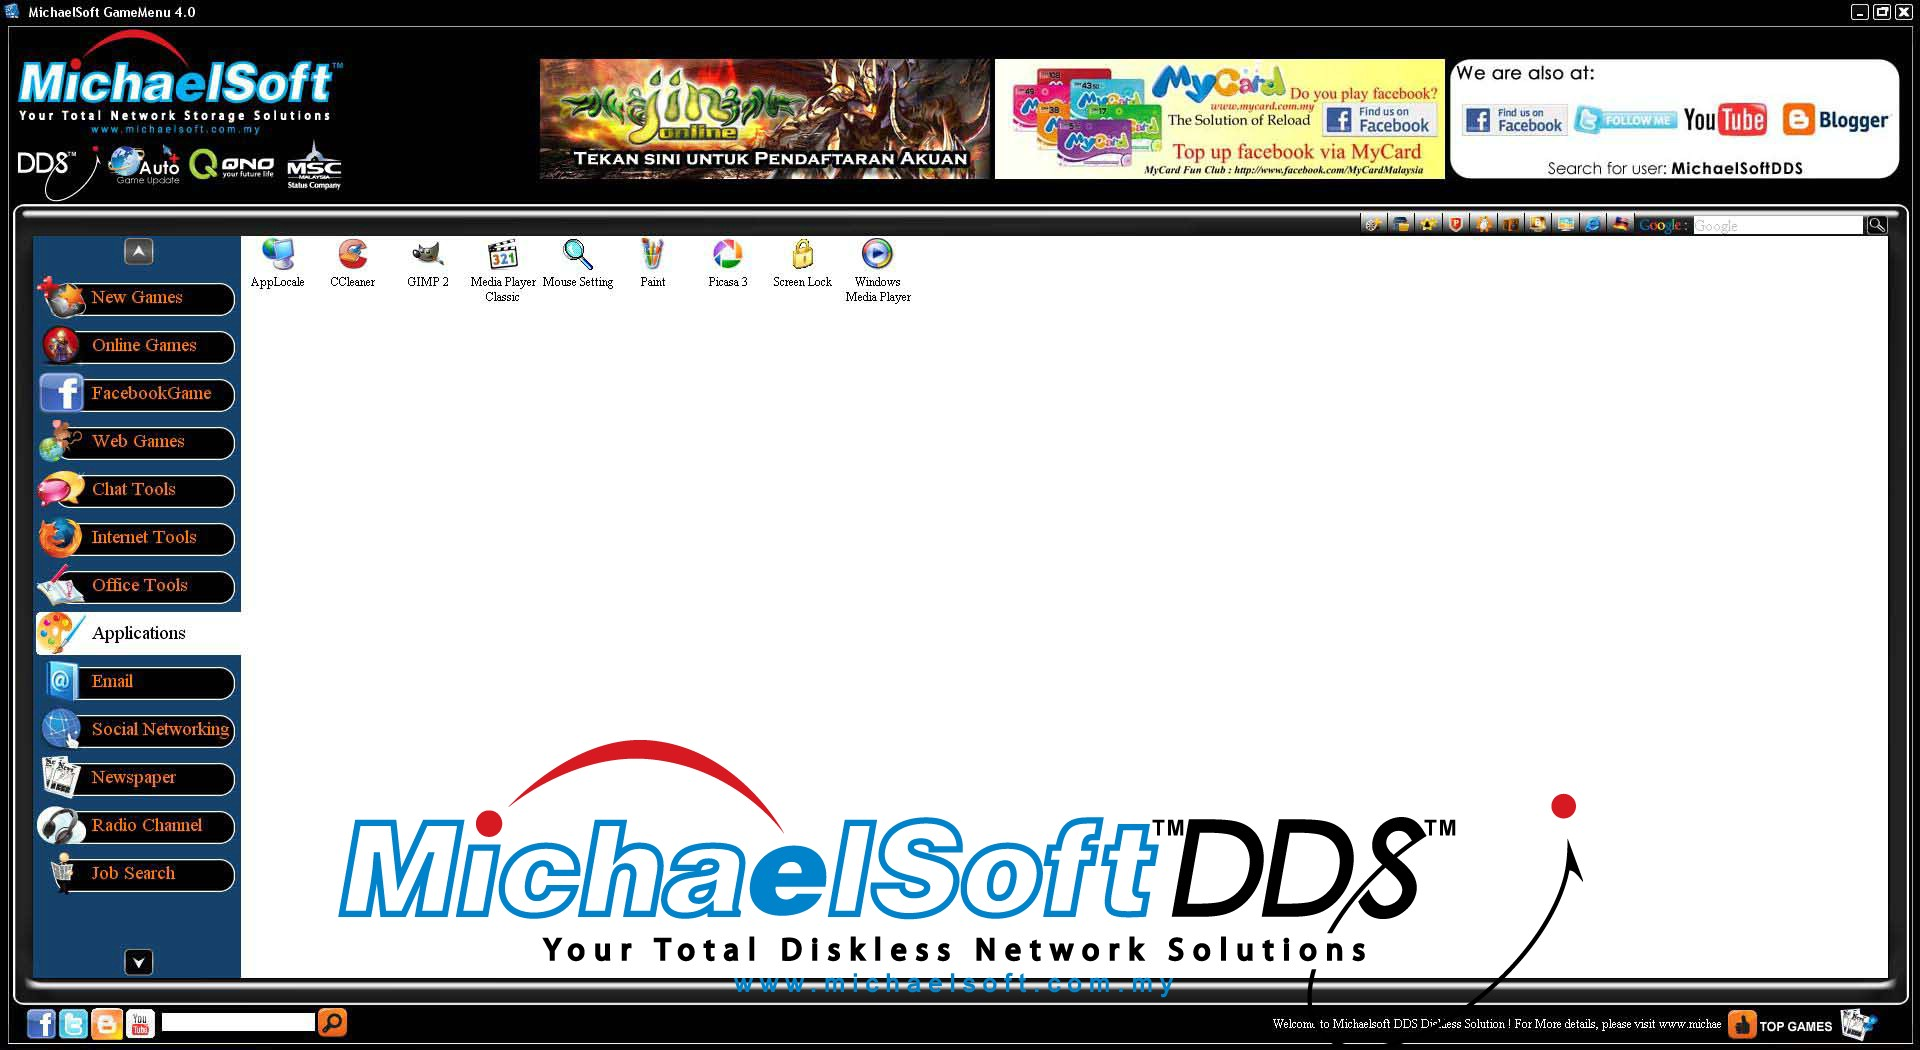 Michaelsoft DDS Diskless Solution , Cloud Computing , Diskless Cybercafe , Diskless System , Michaelsoft DDS Cybercafe Game Menu (Applications)-With Adobe Reader and other application software as per your convenience. For example, movie streaming, photo editing and etc…